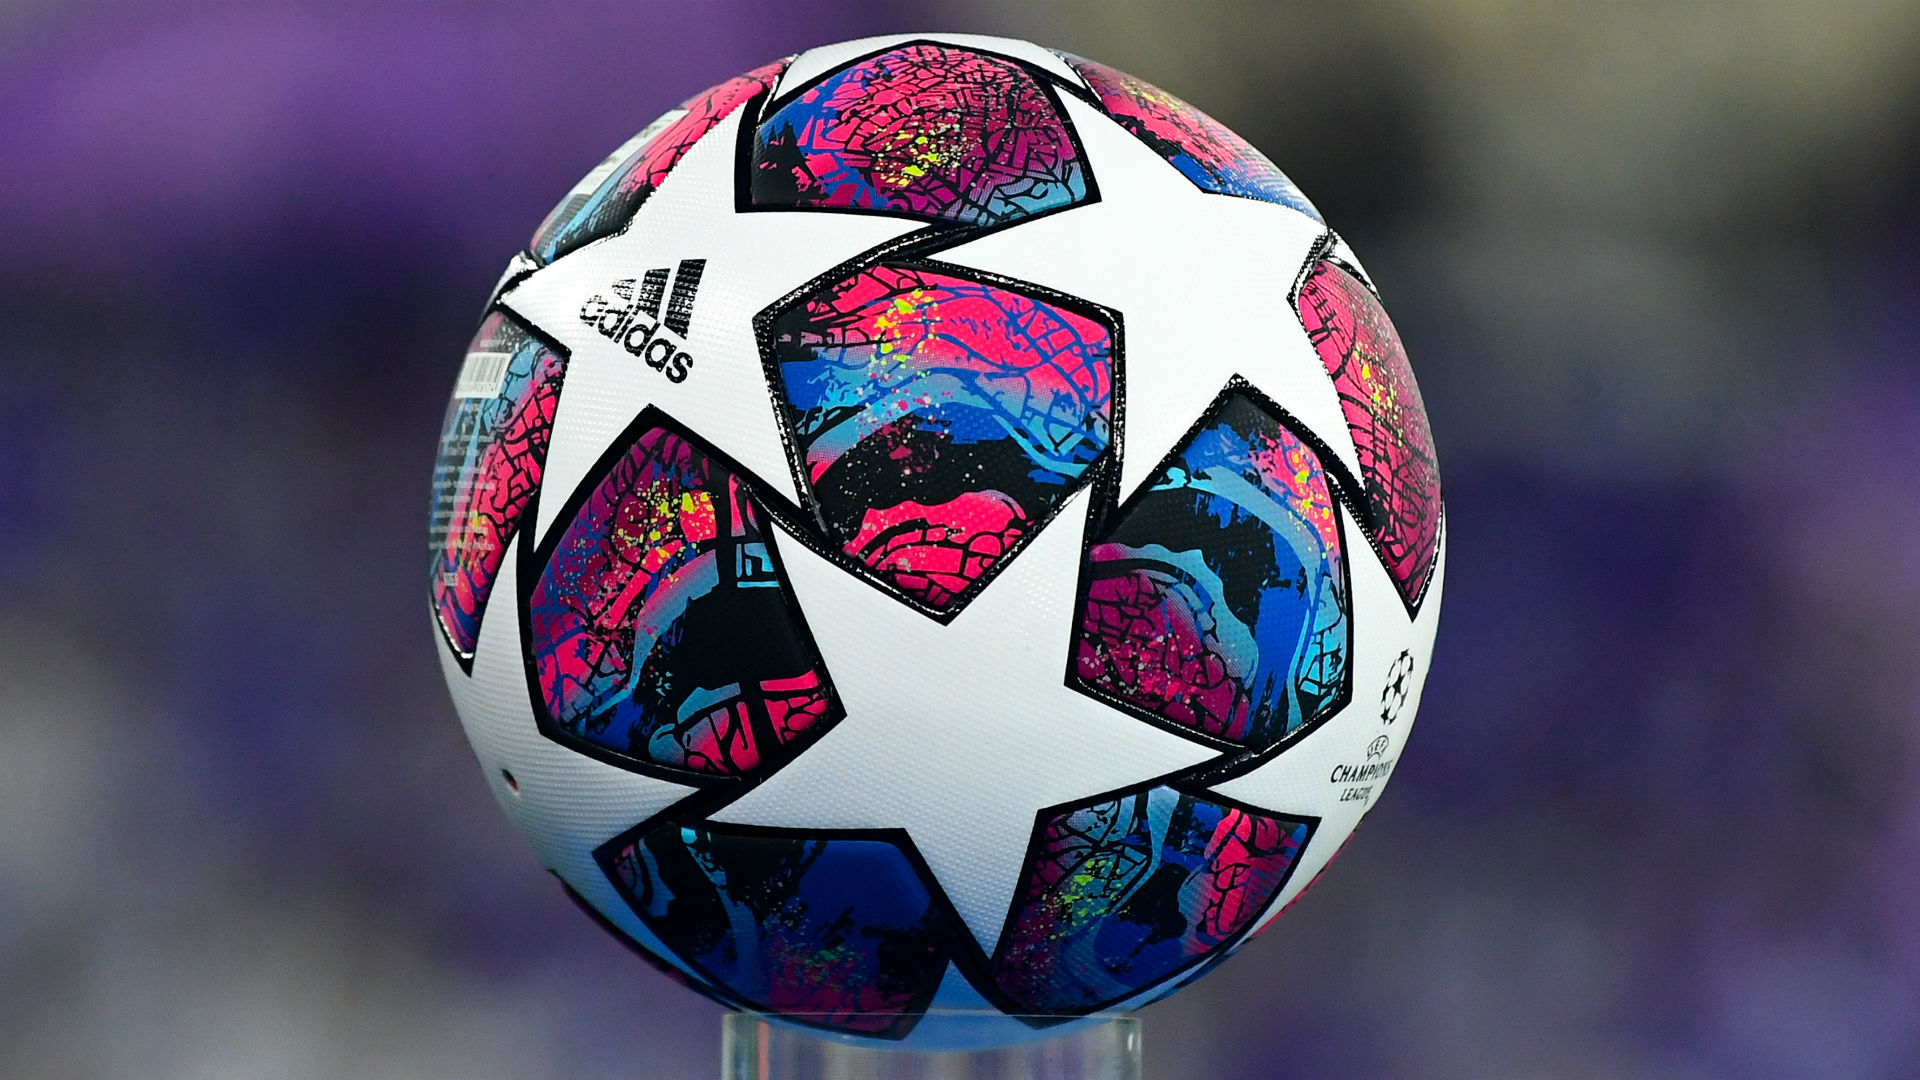 How to watch Champions League in the USA: Full TV schedule for 2020 on CBS channels